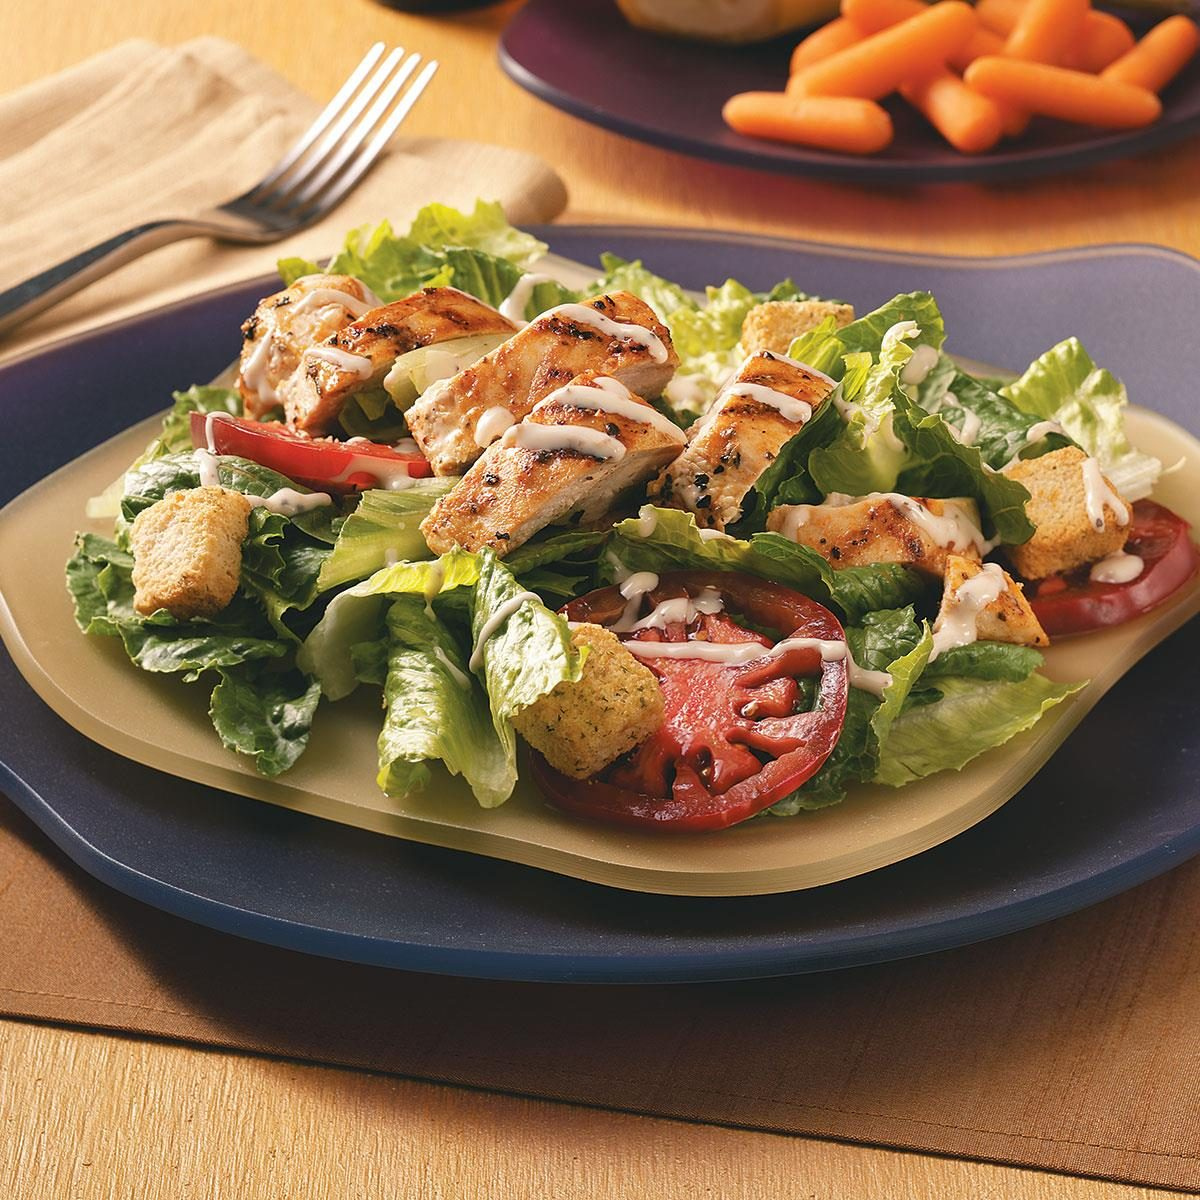 Caesar salad with chicken at home, a simple classic recipe with crackers 7